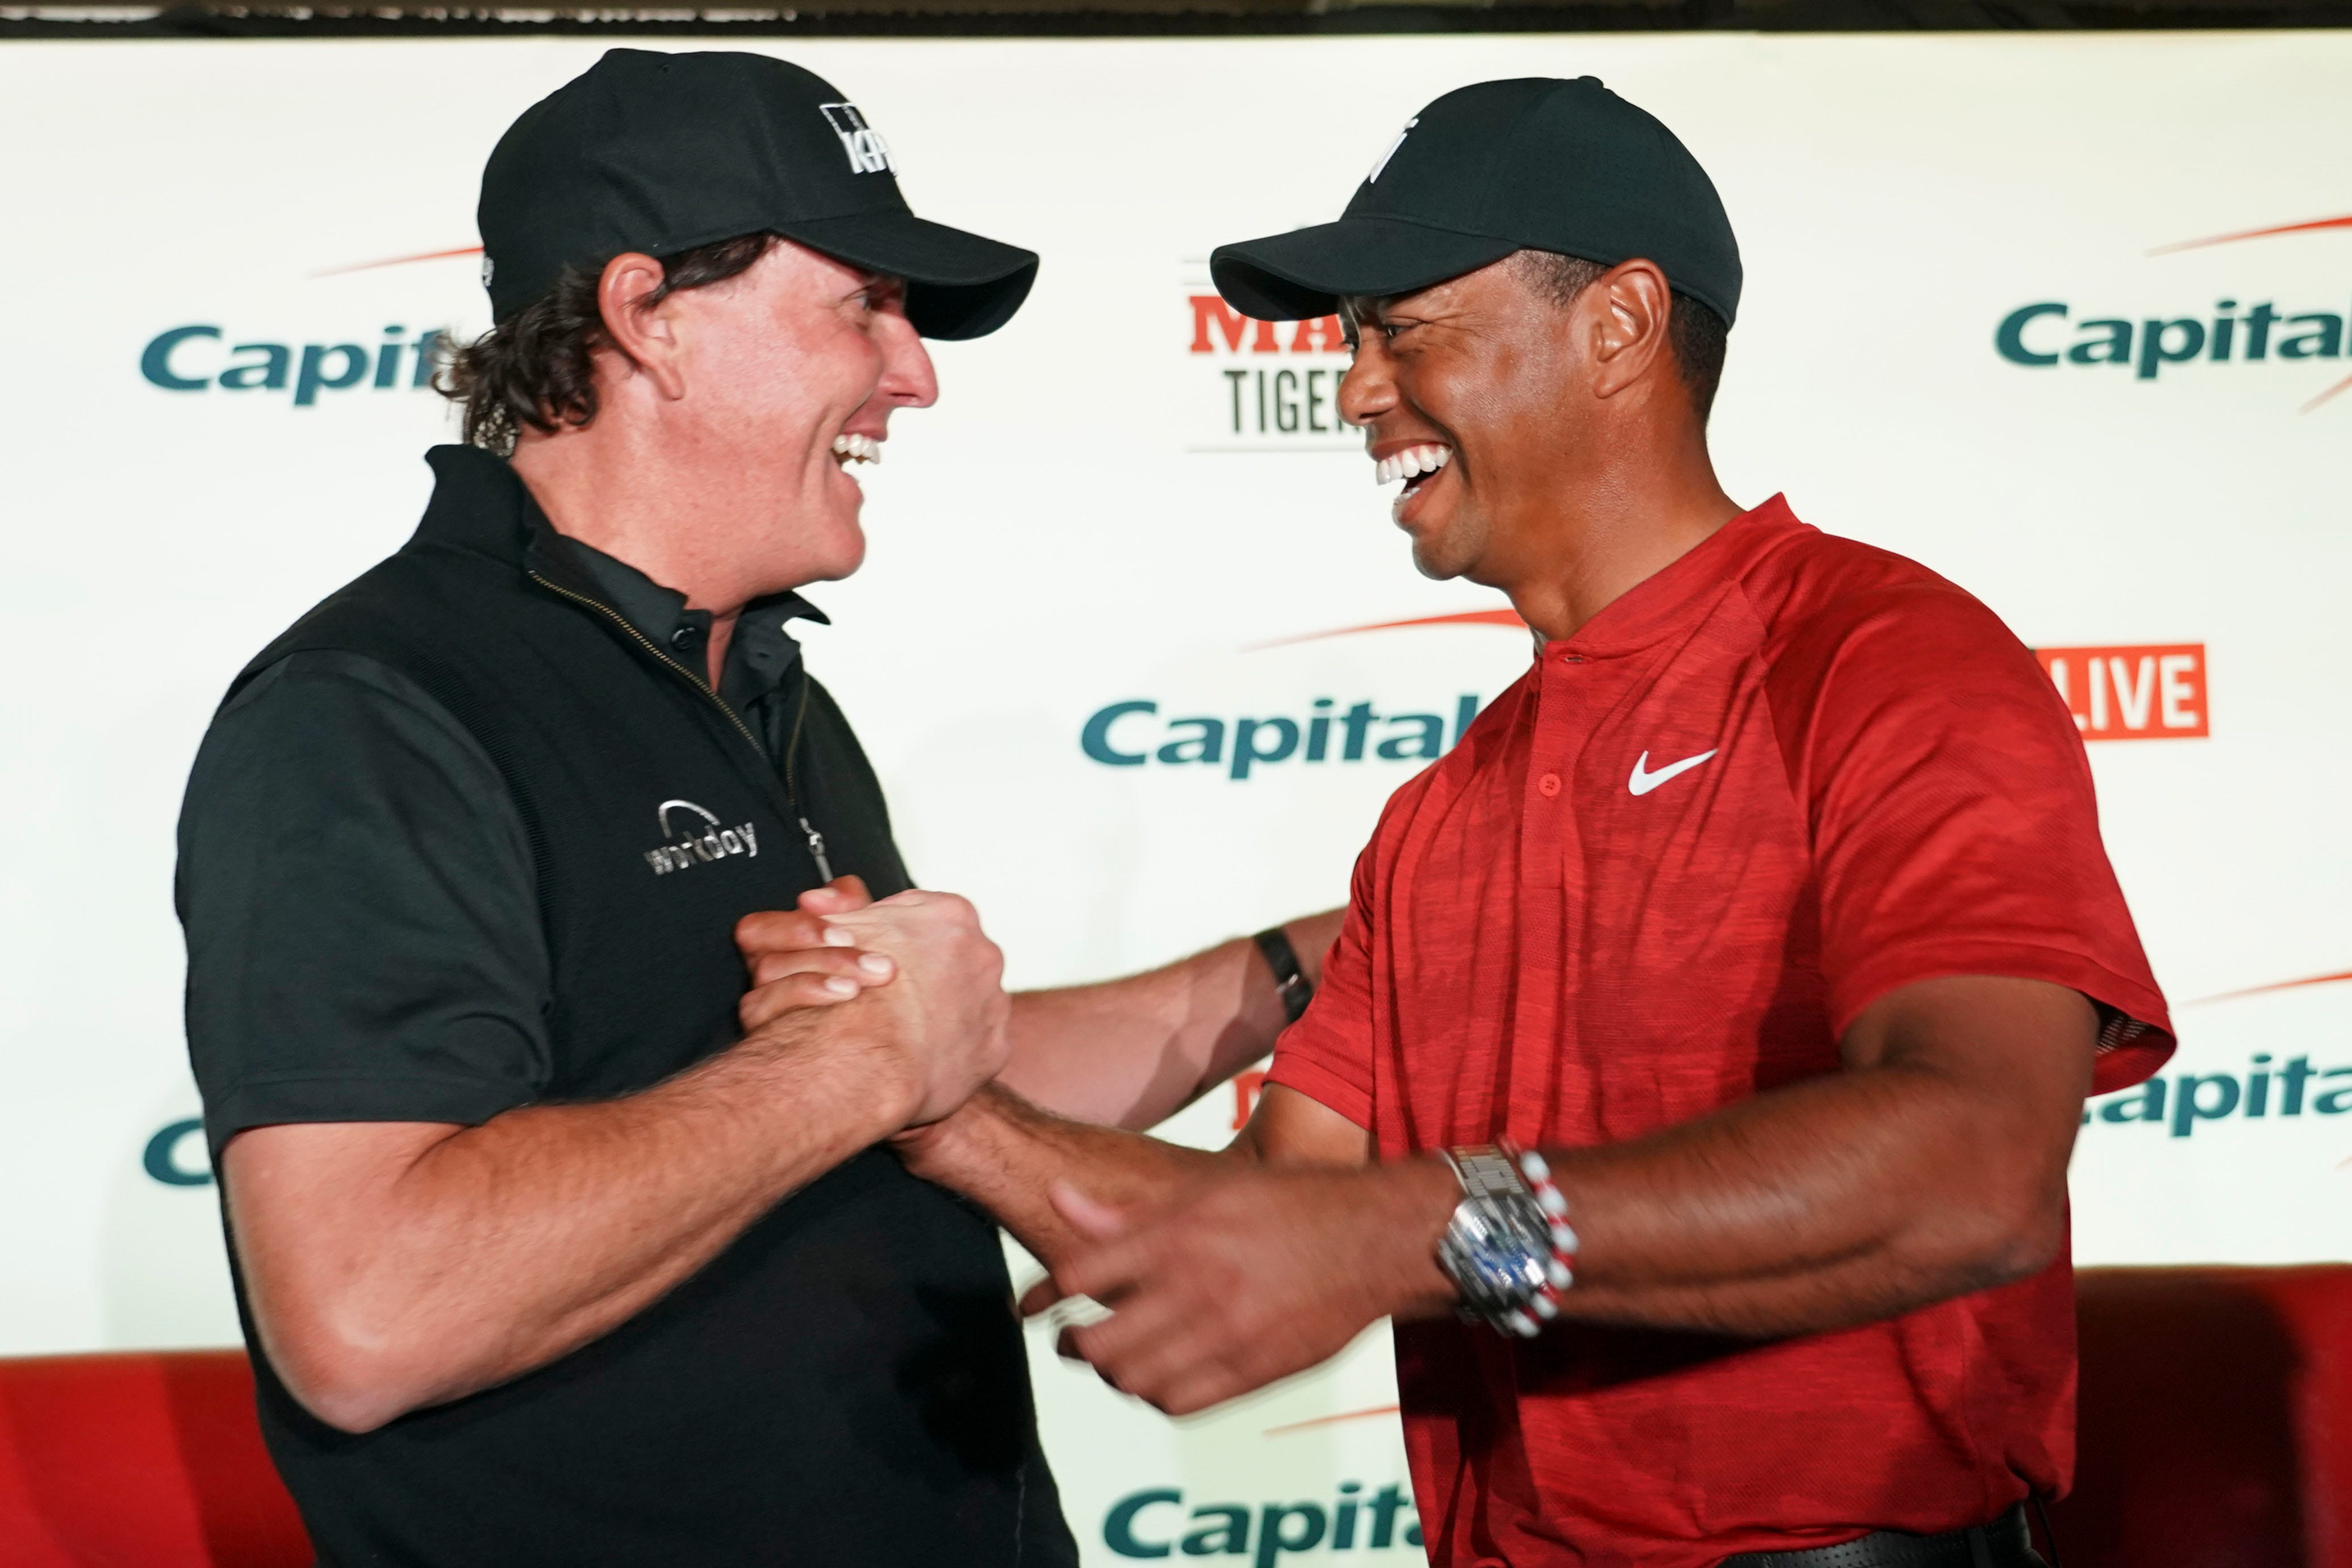 2cb27e0960e61 Spectacular stage set for The Match  Tiger Woods vs. Phil Mickelson at Shadow  Creek